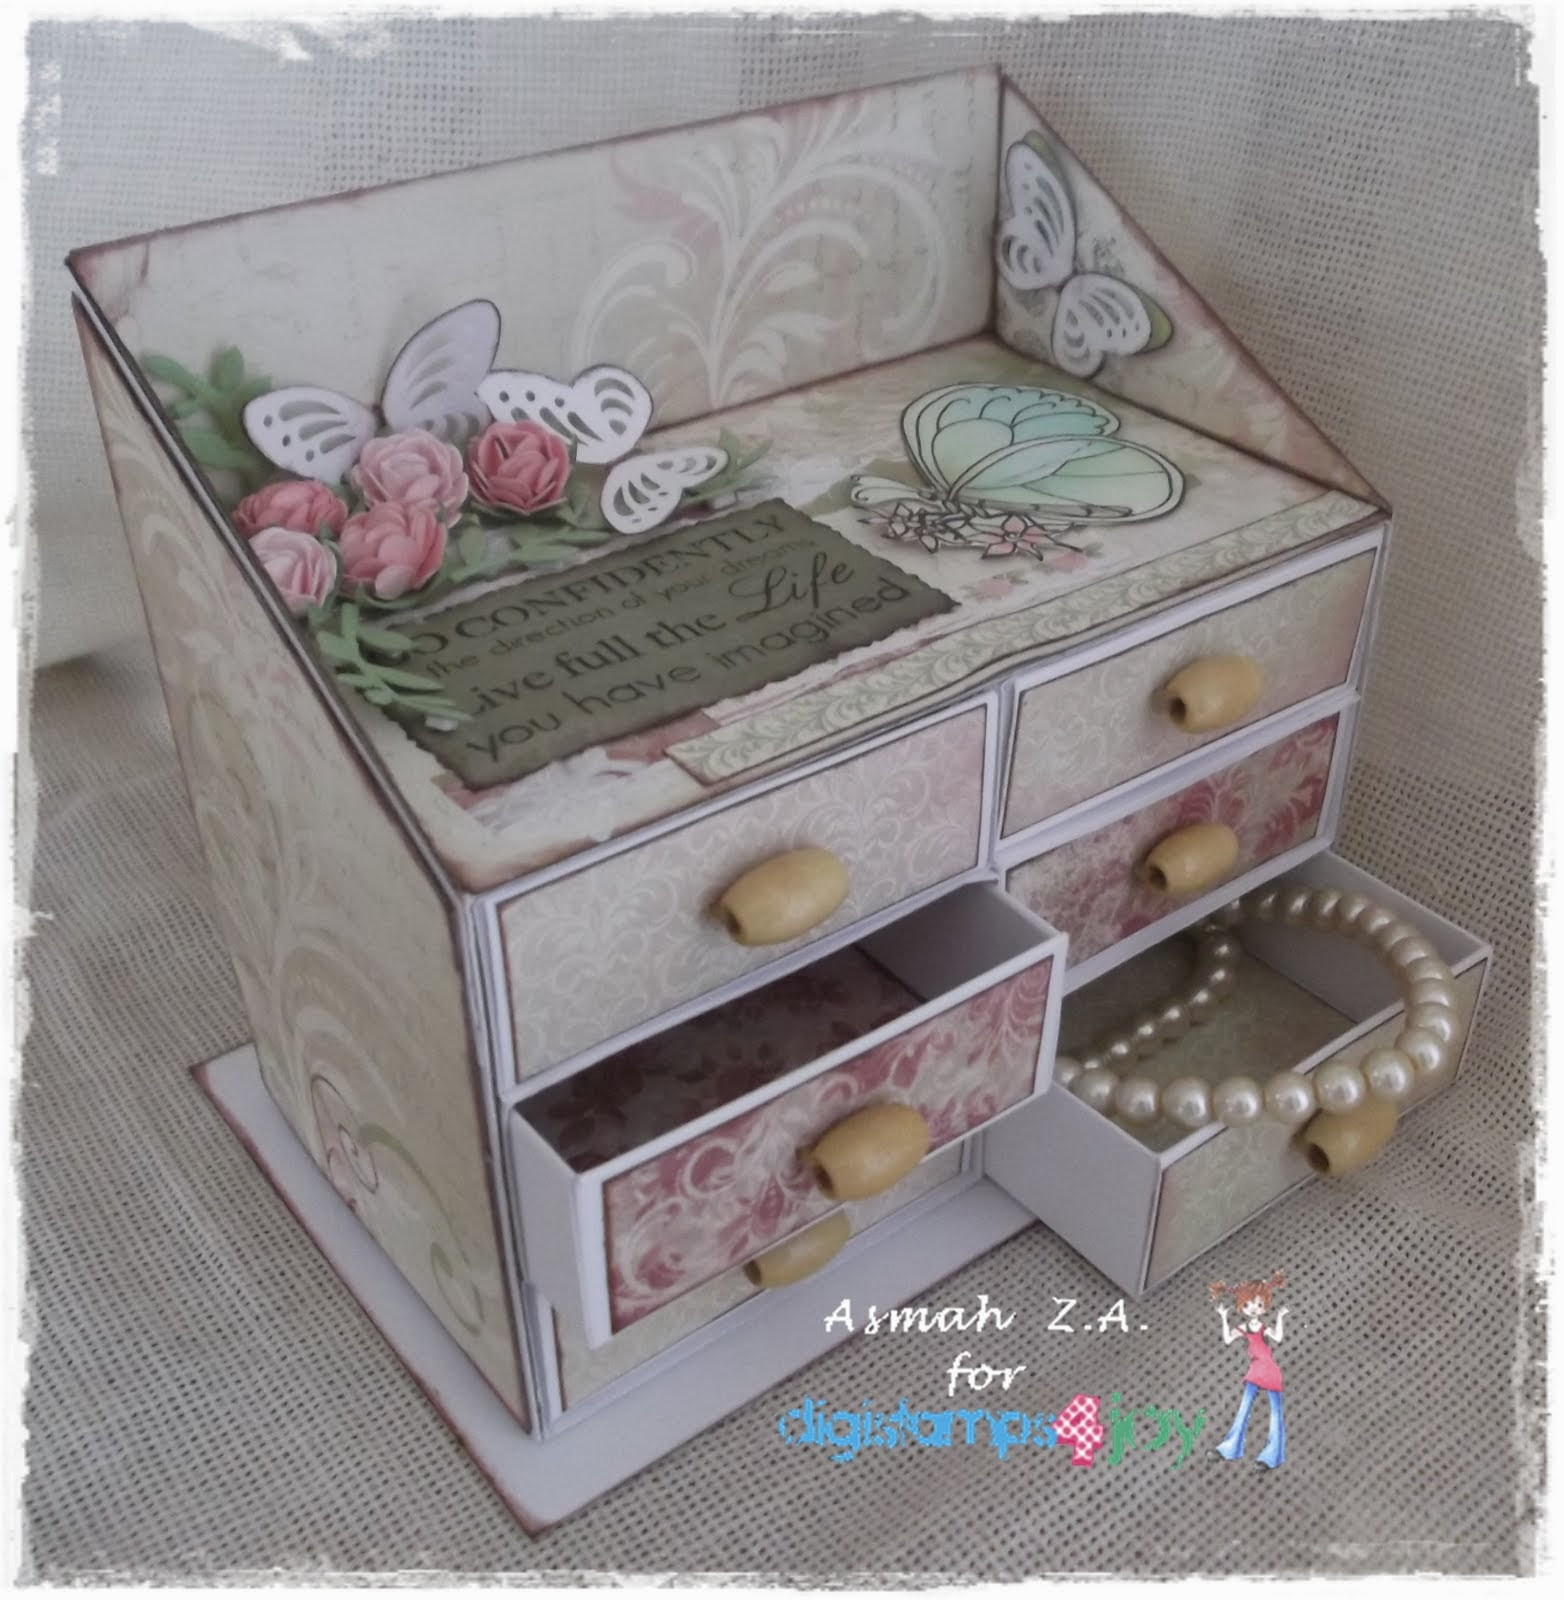 as Top 3 winner for this dresser (6 November 2013):